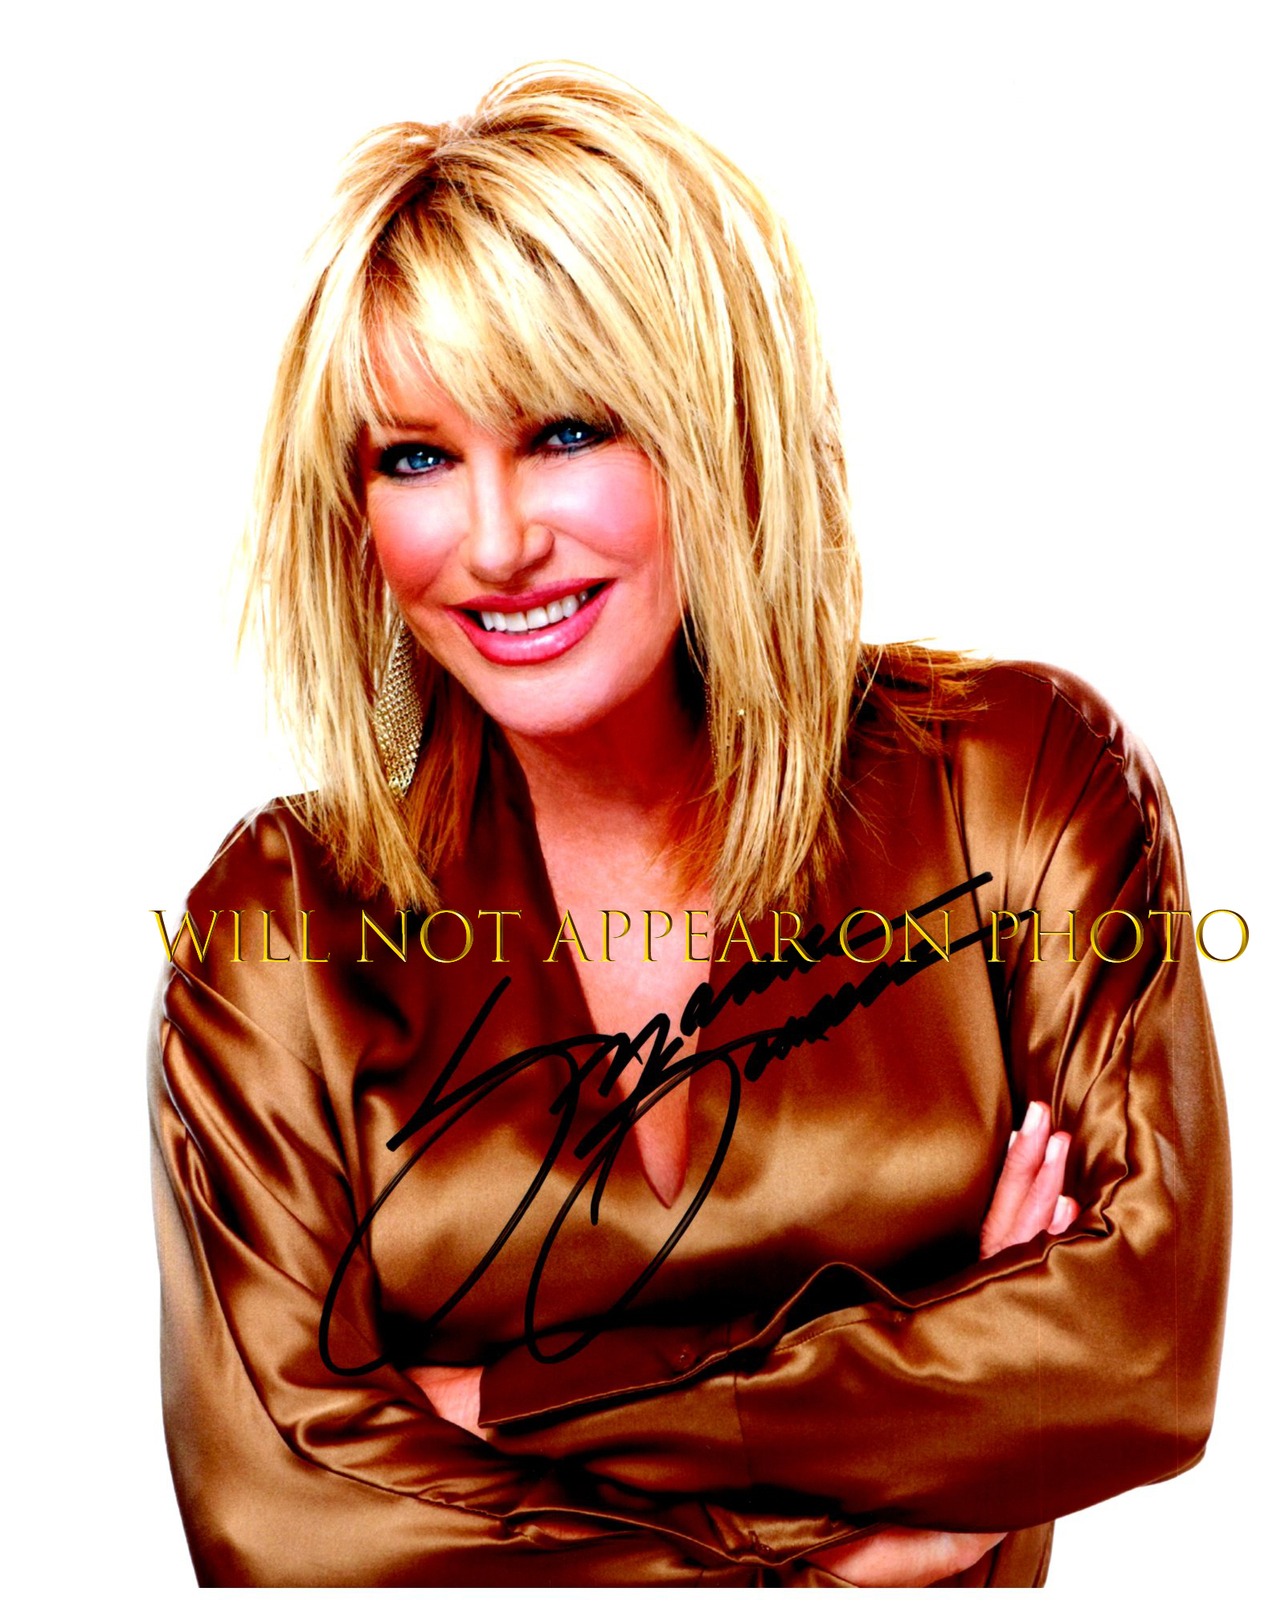 Primary image for SUZANNE SOMERS Signed Autographed 8X10 Photo w/ Certificate of Authenticity 403